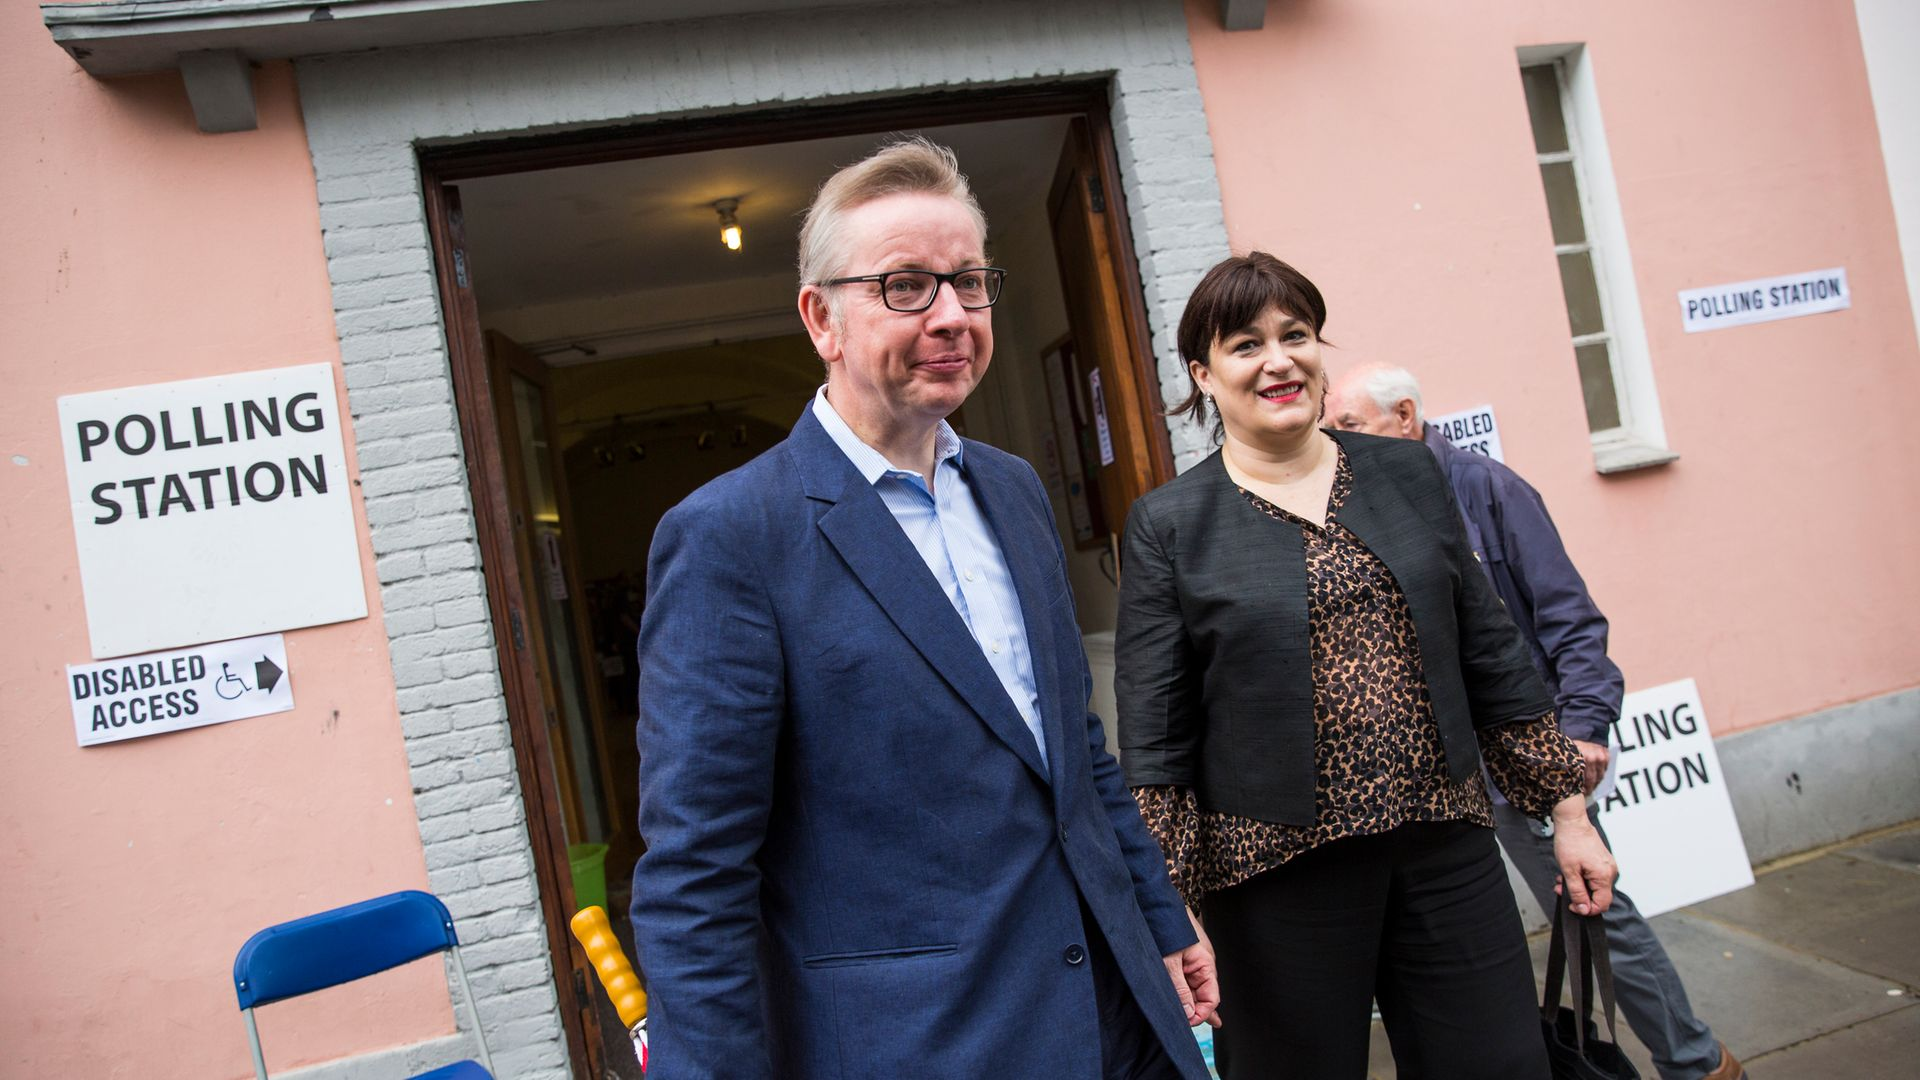 Michael Gove and  Sarah Vine vote in the Brexit referendum on June 23, 2016 - Credit: Photo by Jack Taylor/Getty Images